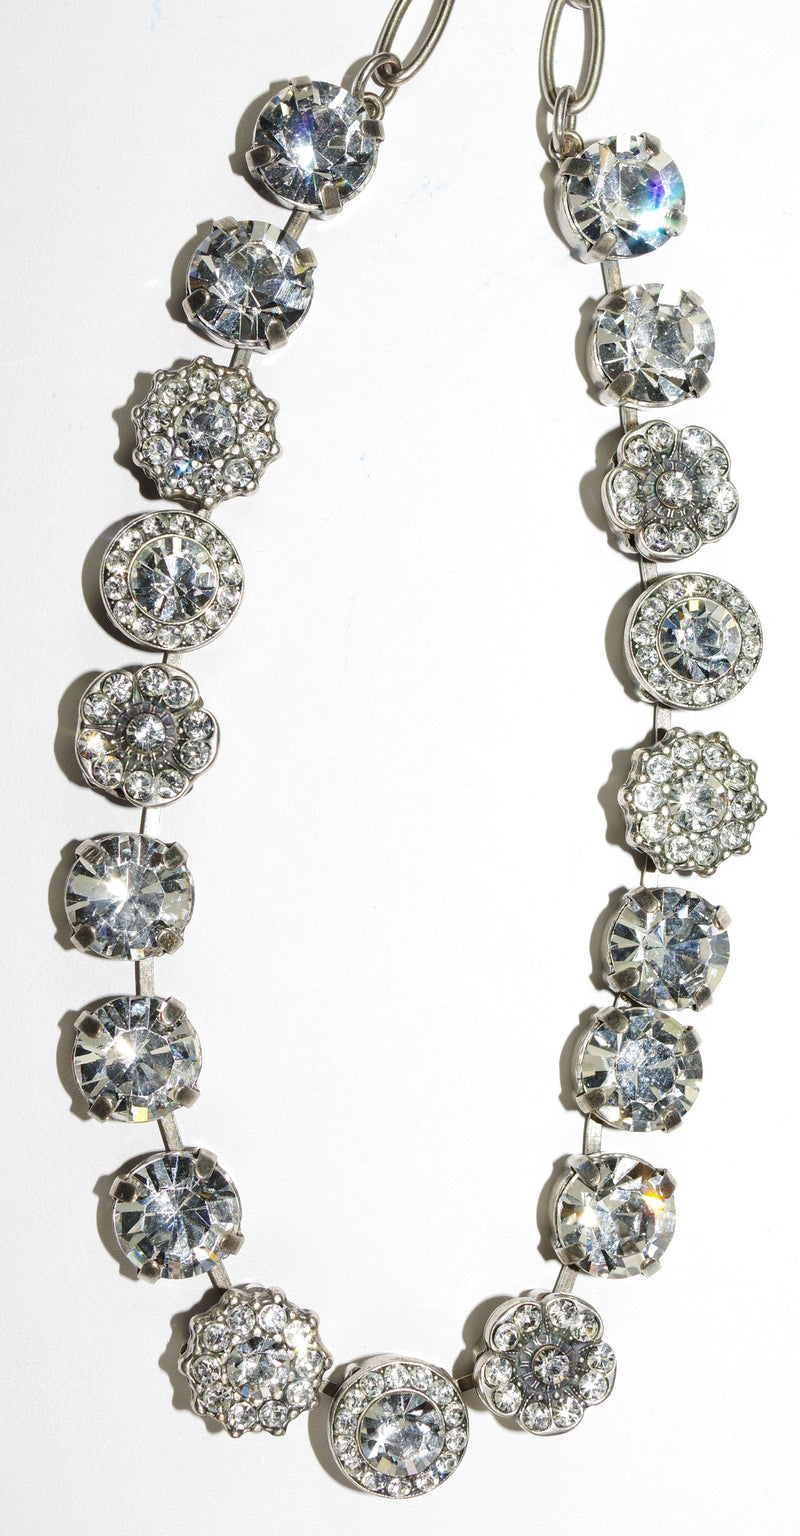 "MARIANA NECKLACE ON A CLEAR DAY SOPHIA: clear stones in silver setting, 16"" adjustable chain"